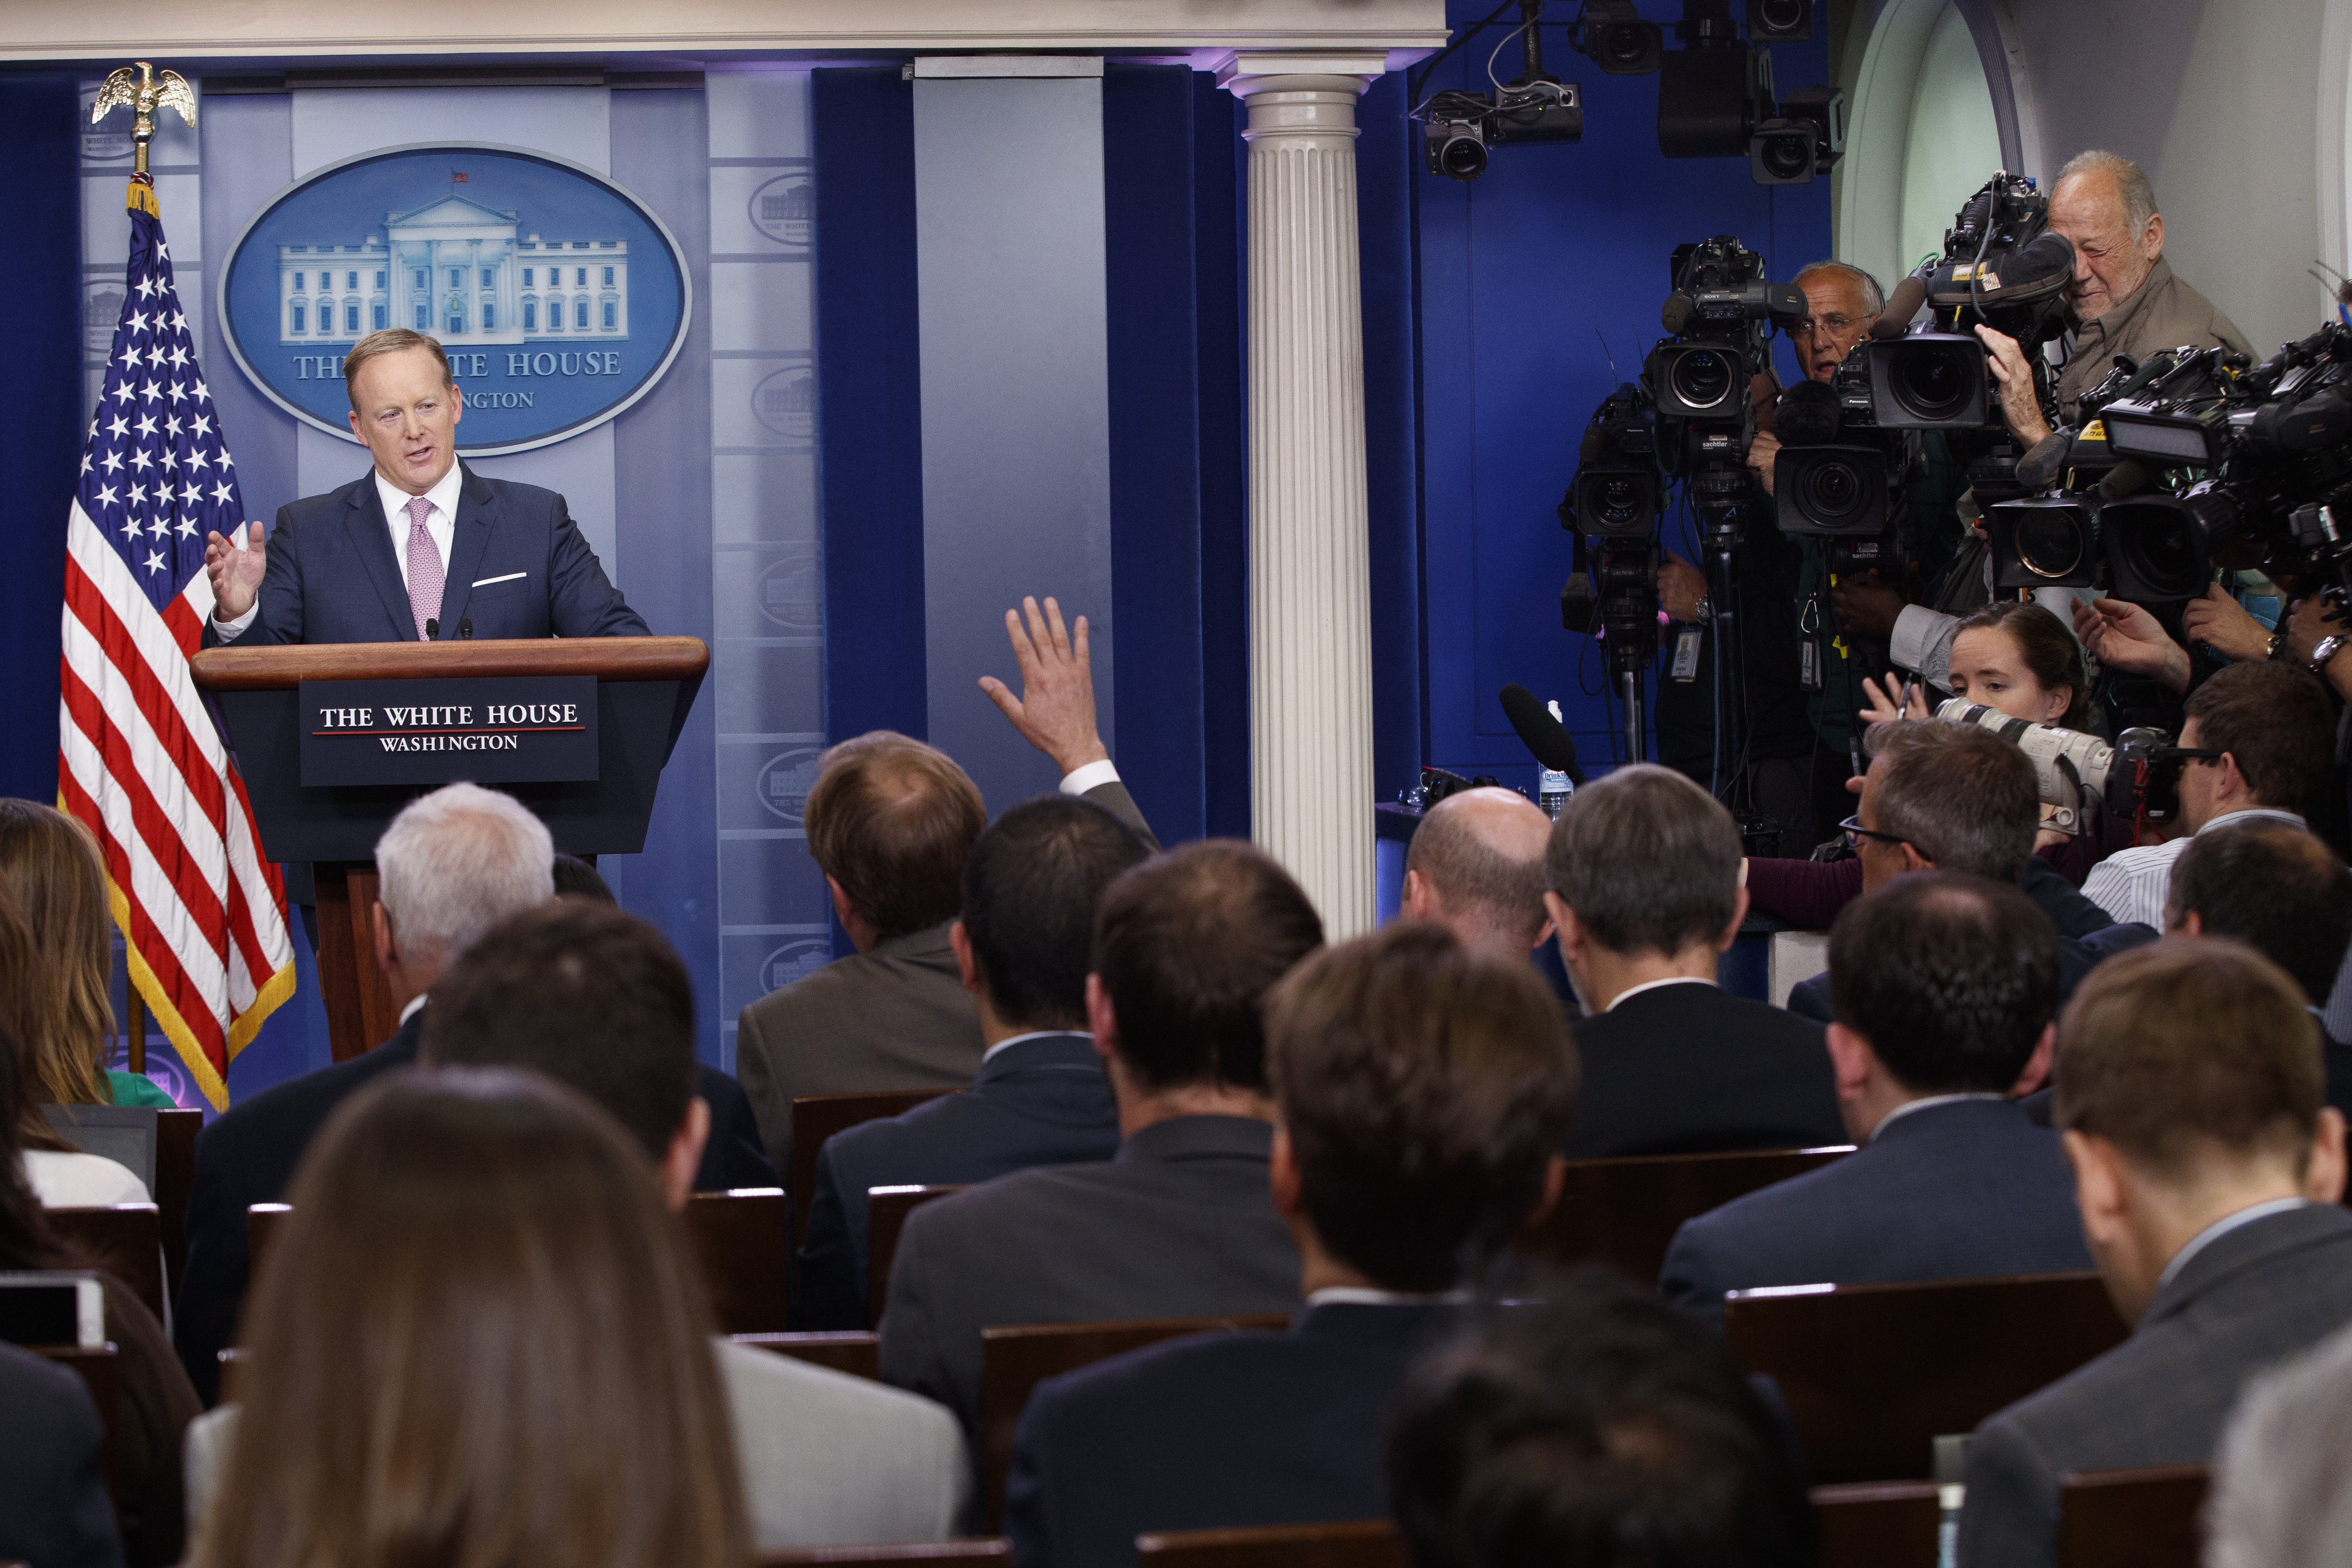 White House press secretary Sean Spicer speaks during the daily press briefing at the White House in Washington, May 12, 2017.